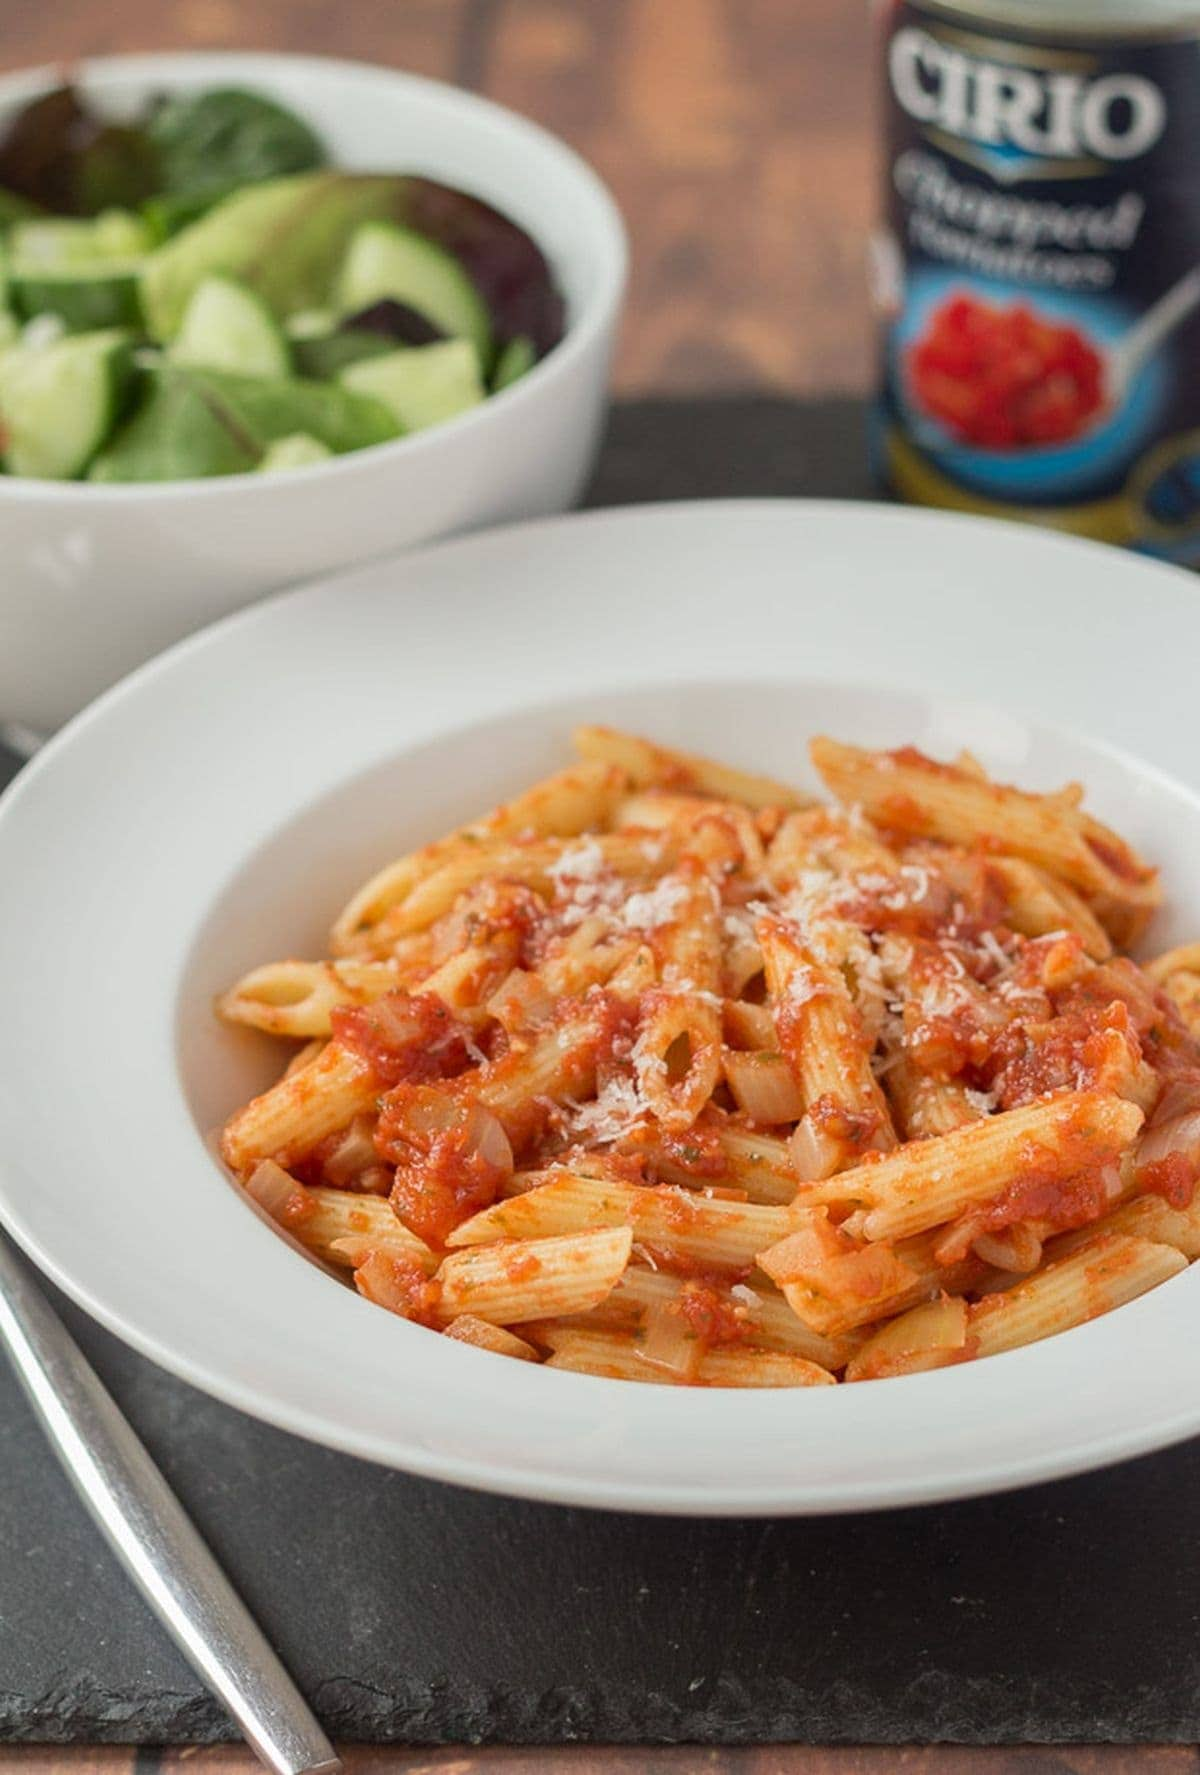 A plate of easy pasta arrabiata. Tin of tomatoes and a green salad in the background.